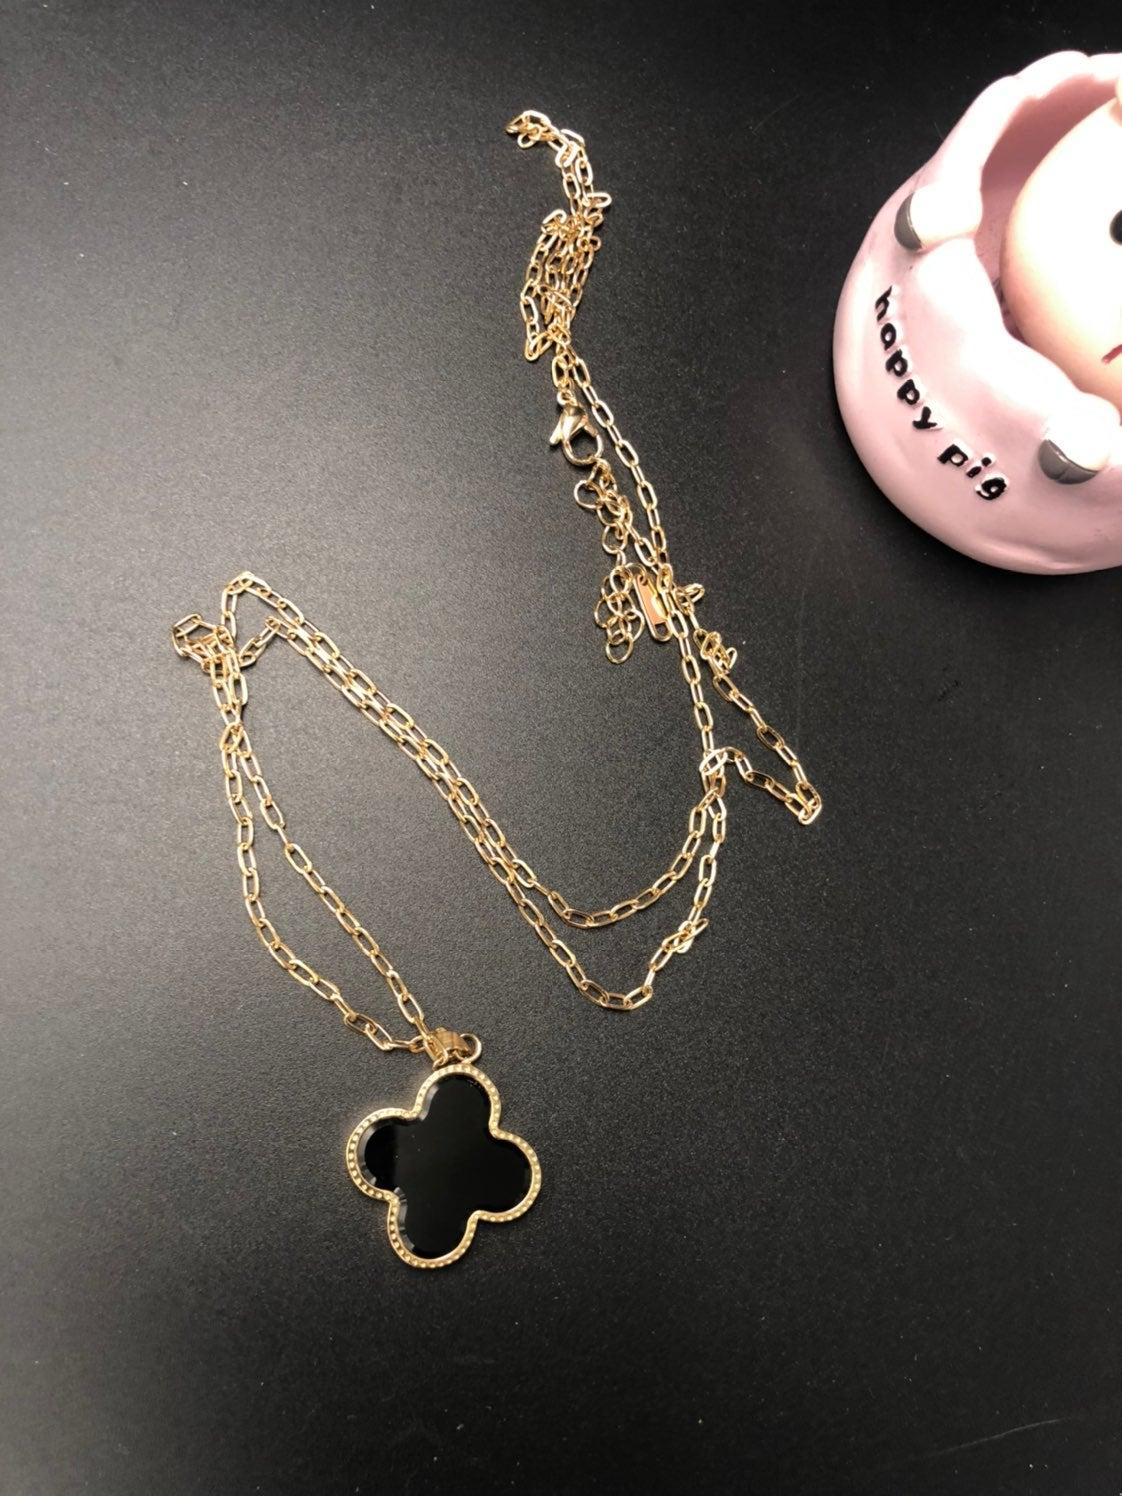 Four-leaf clover long chain